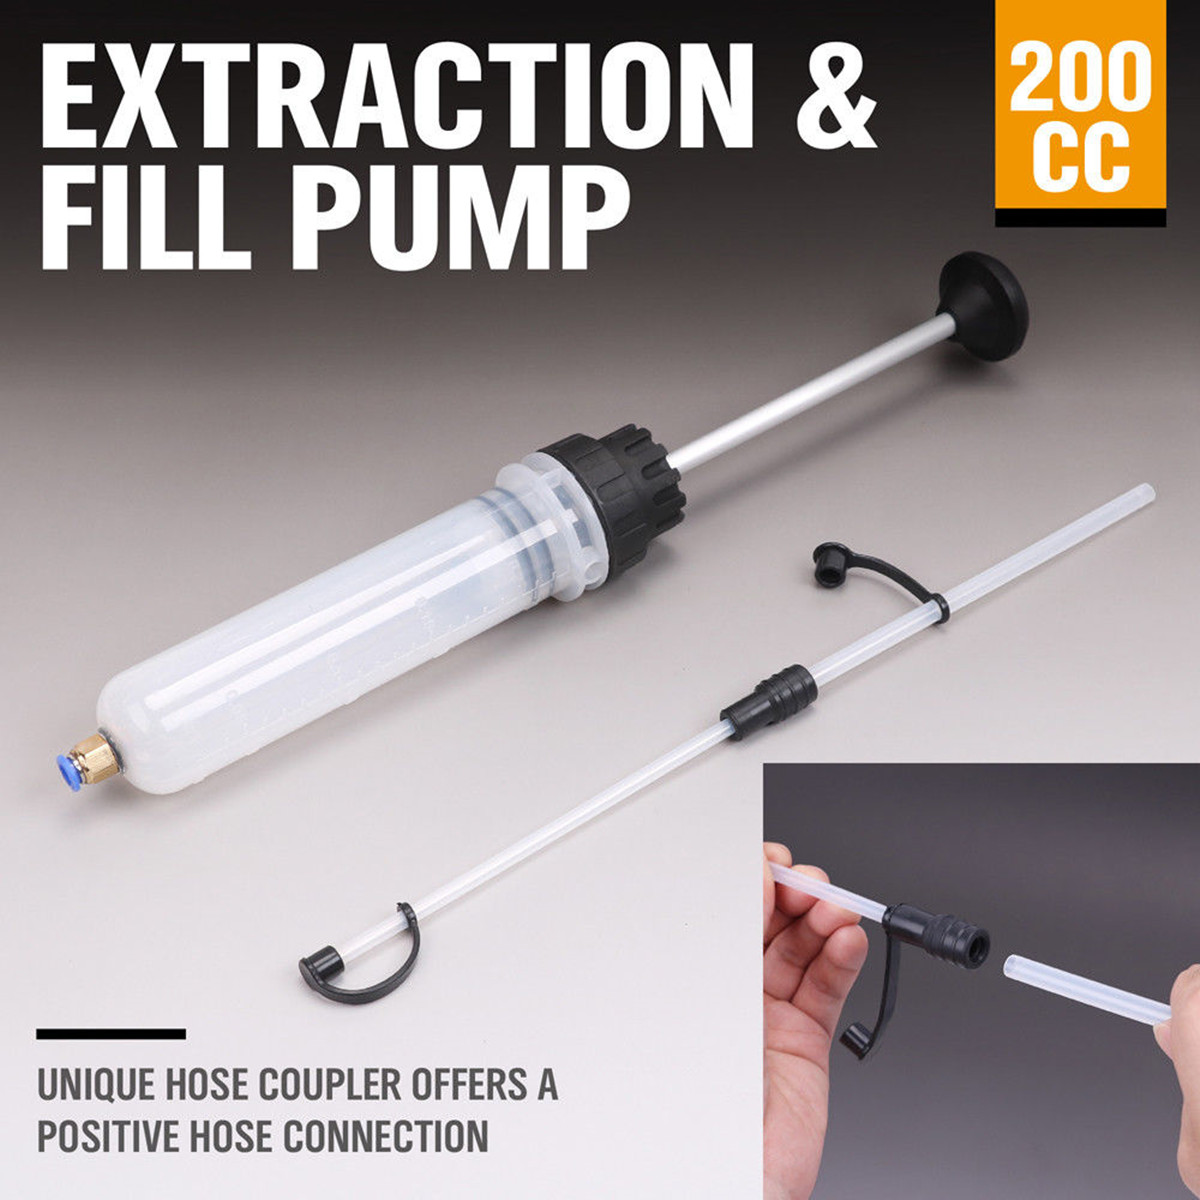 NEW 200cc Oil Fluid Extractor & Filling Syringe Bottle Transfer Hand Pump Automotive Fluid Extraction Car Fuel Pump Car Styling